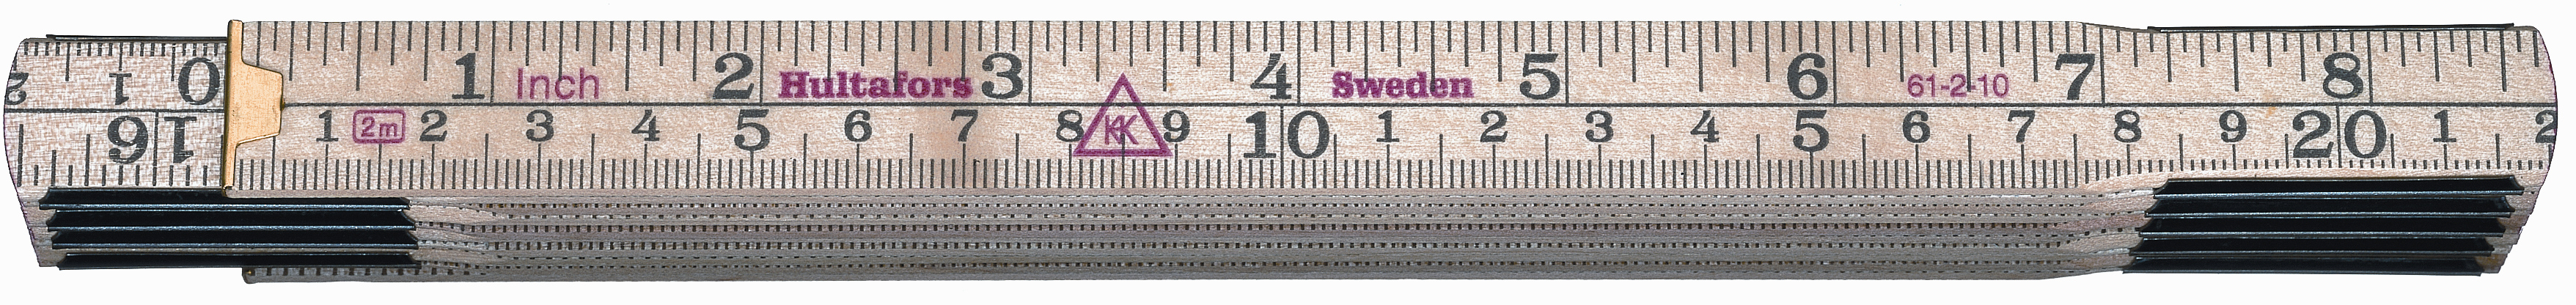 Hultafors Folding Rule 61 — 2m, 10 sections HU-100504